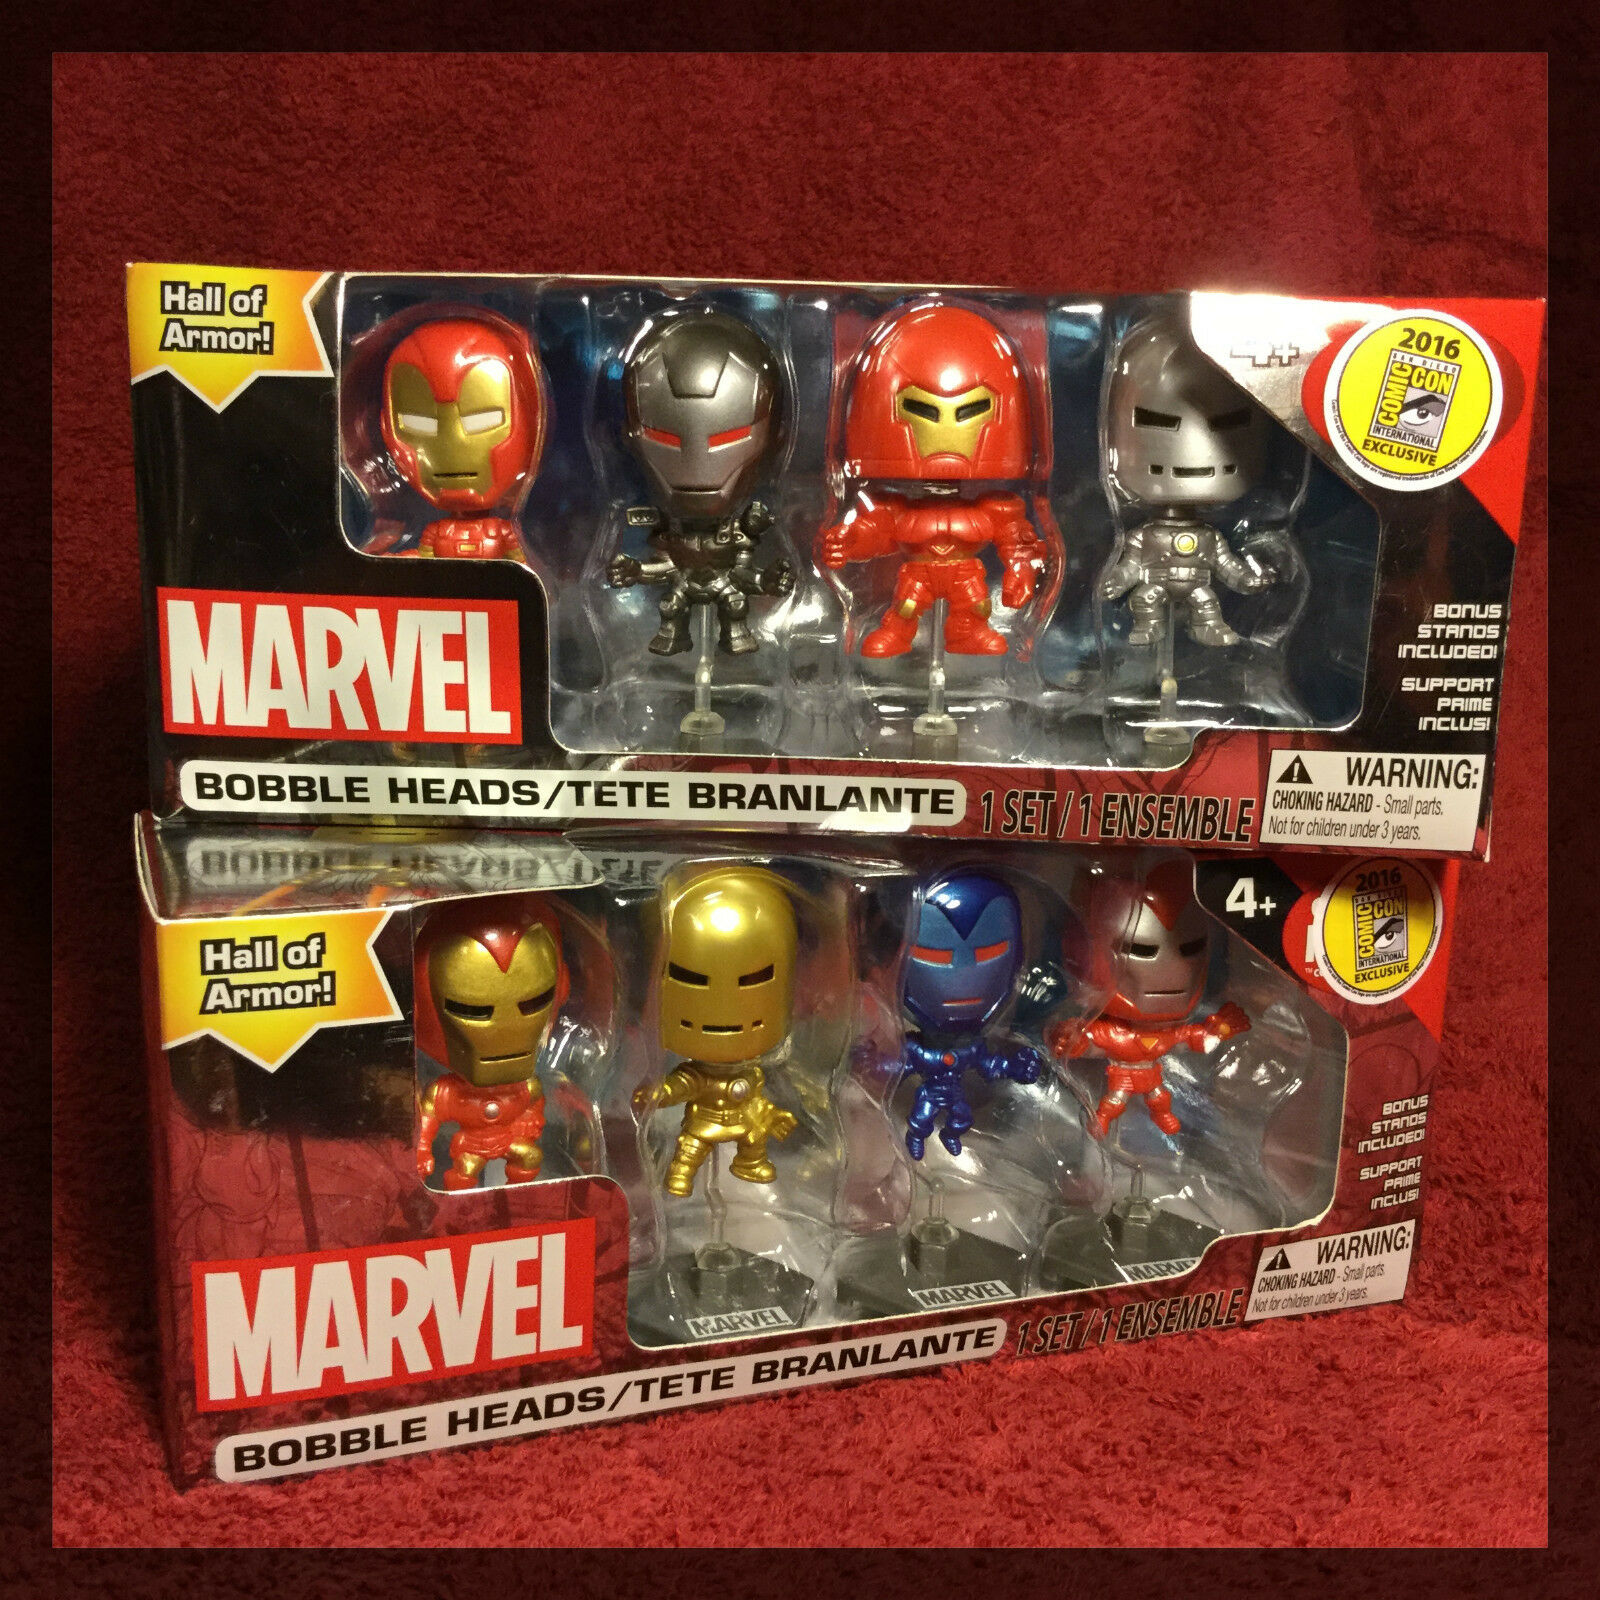 SDCC 2016 Marvel Iron uomo Htutti of Armor 8 Piece EXCLUSIVE Mini cifra nuovo Rare